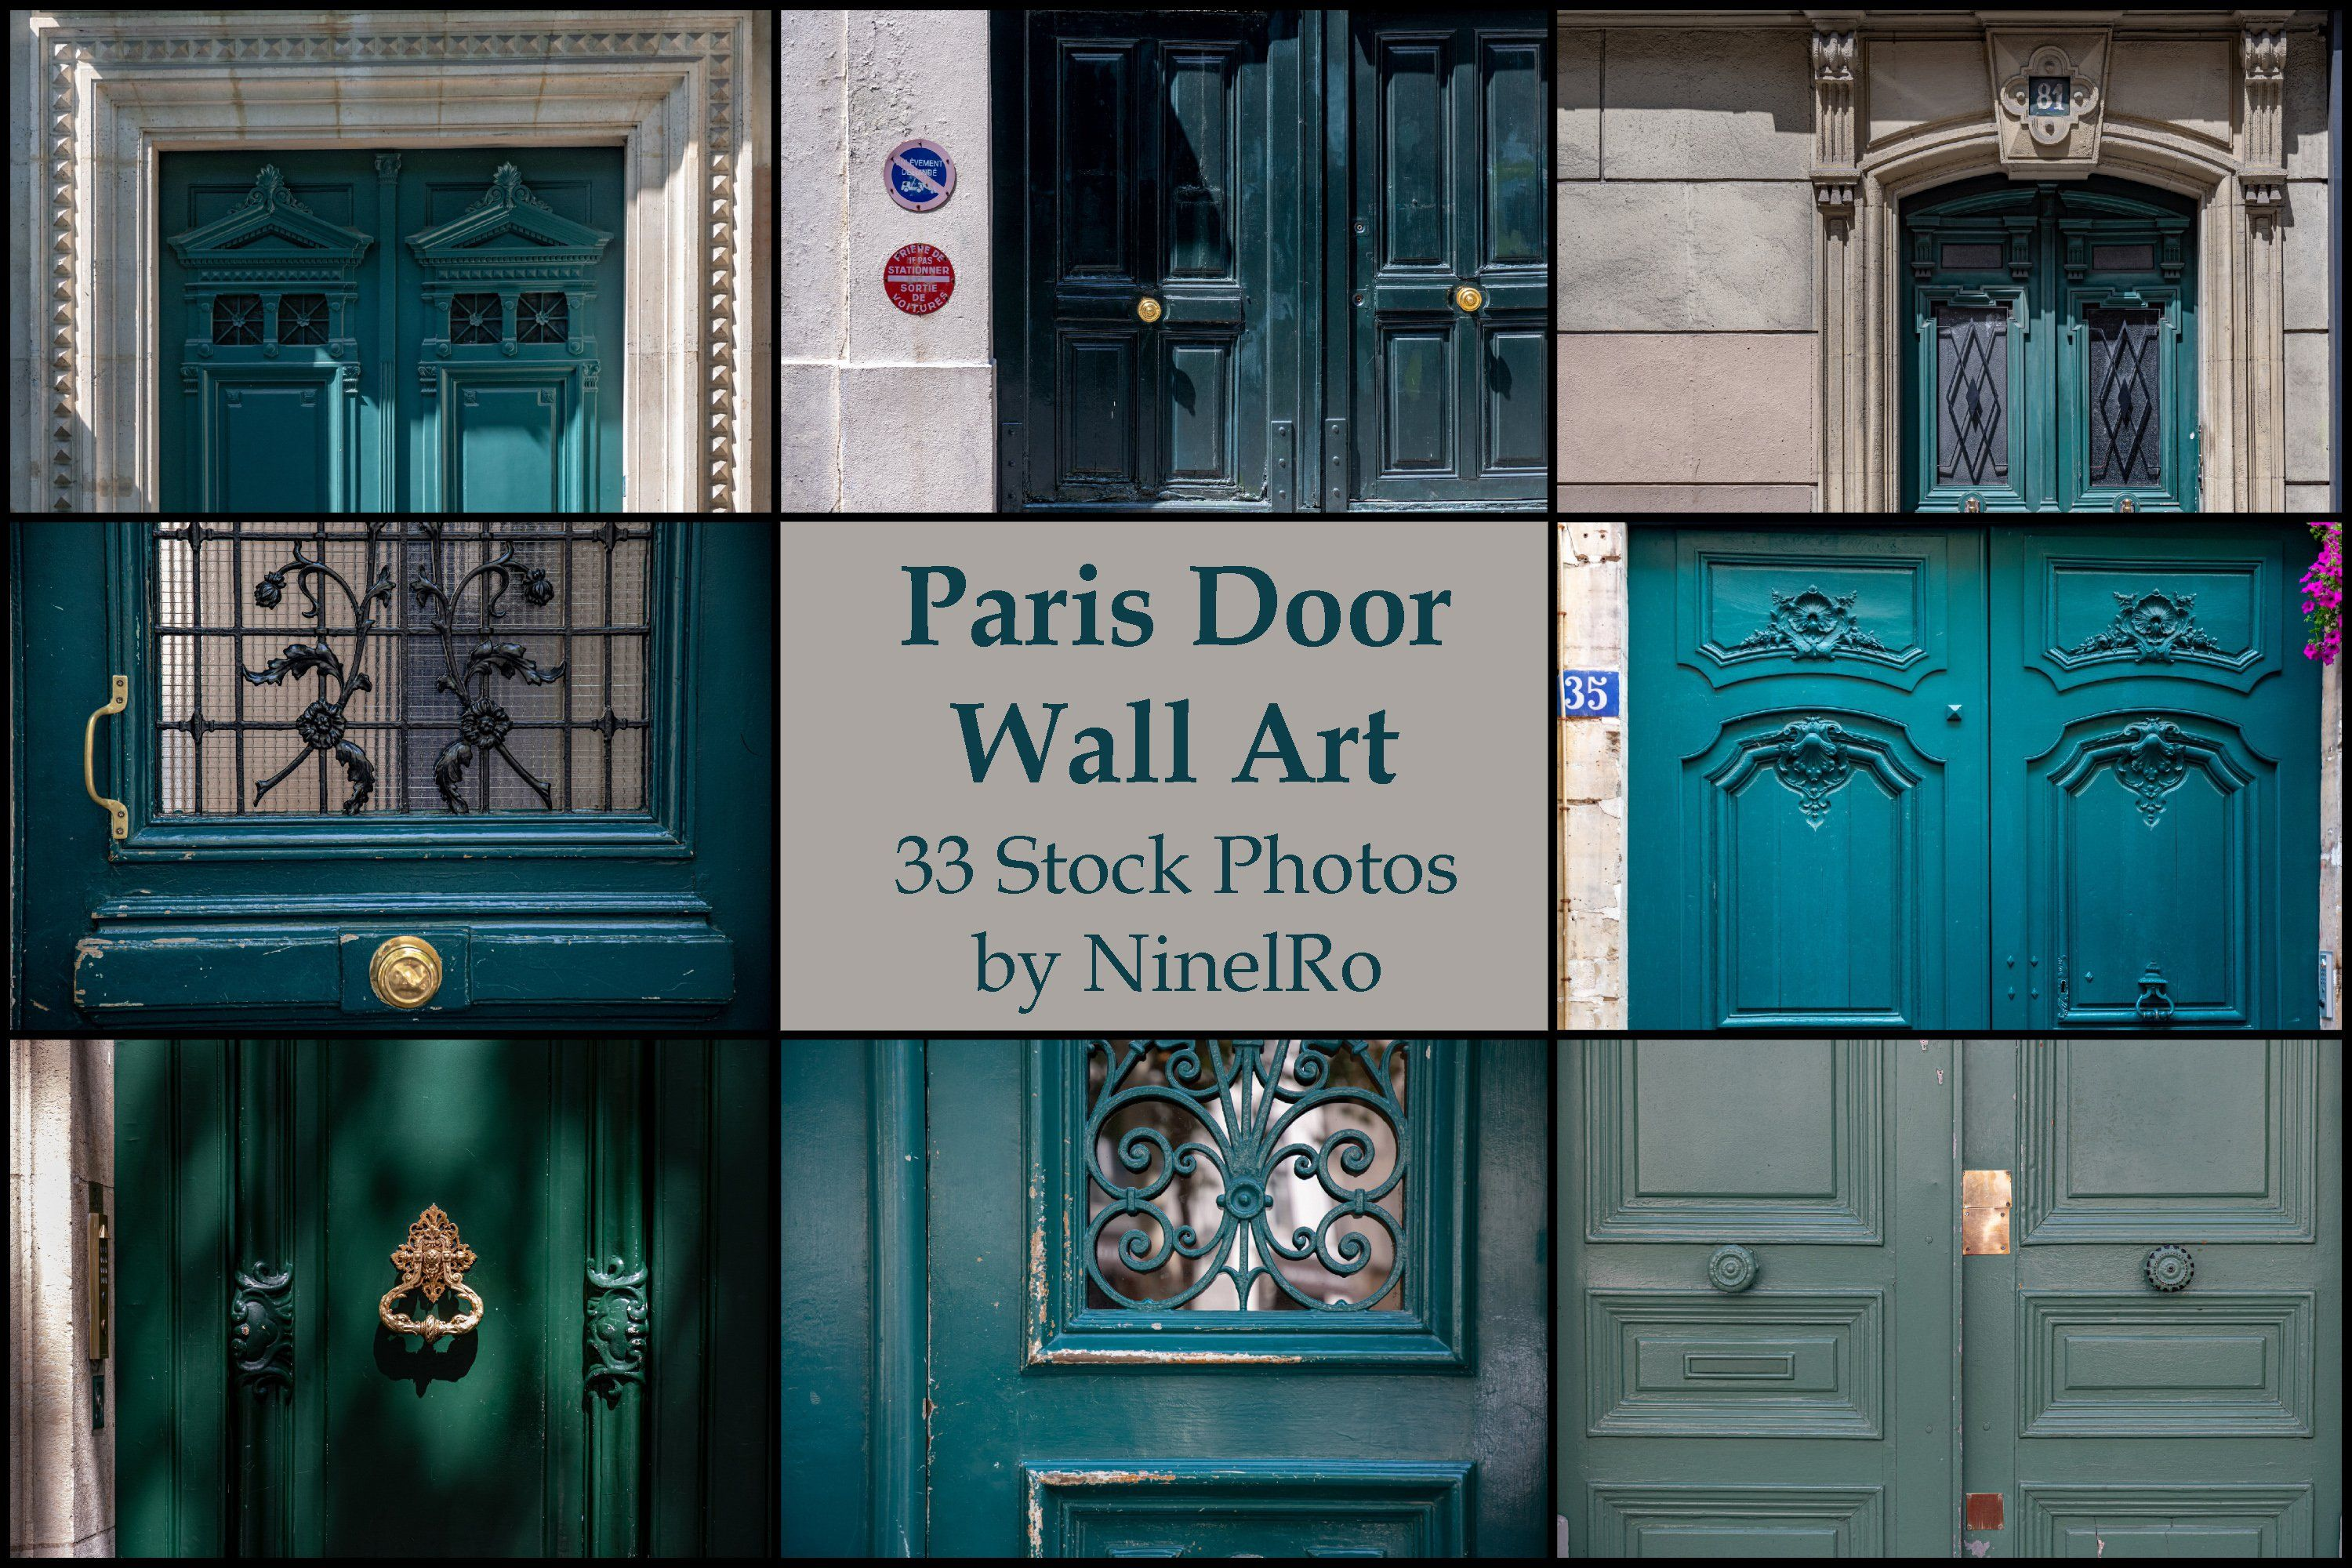 Paris Door Wall Art Set Of 33 Photos Vintage Green Doors Background Backdrop Texture Stockphoto Wallart Ninelro Postca Wall Art Sets Paris Door Art Set